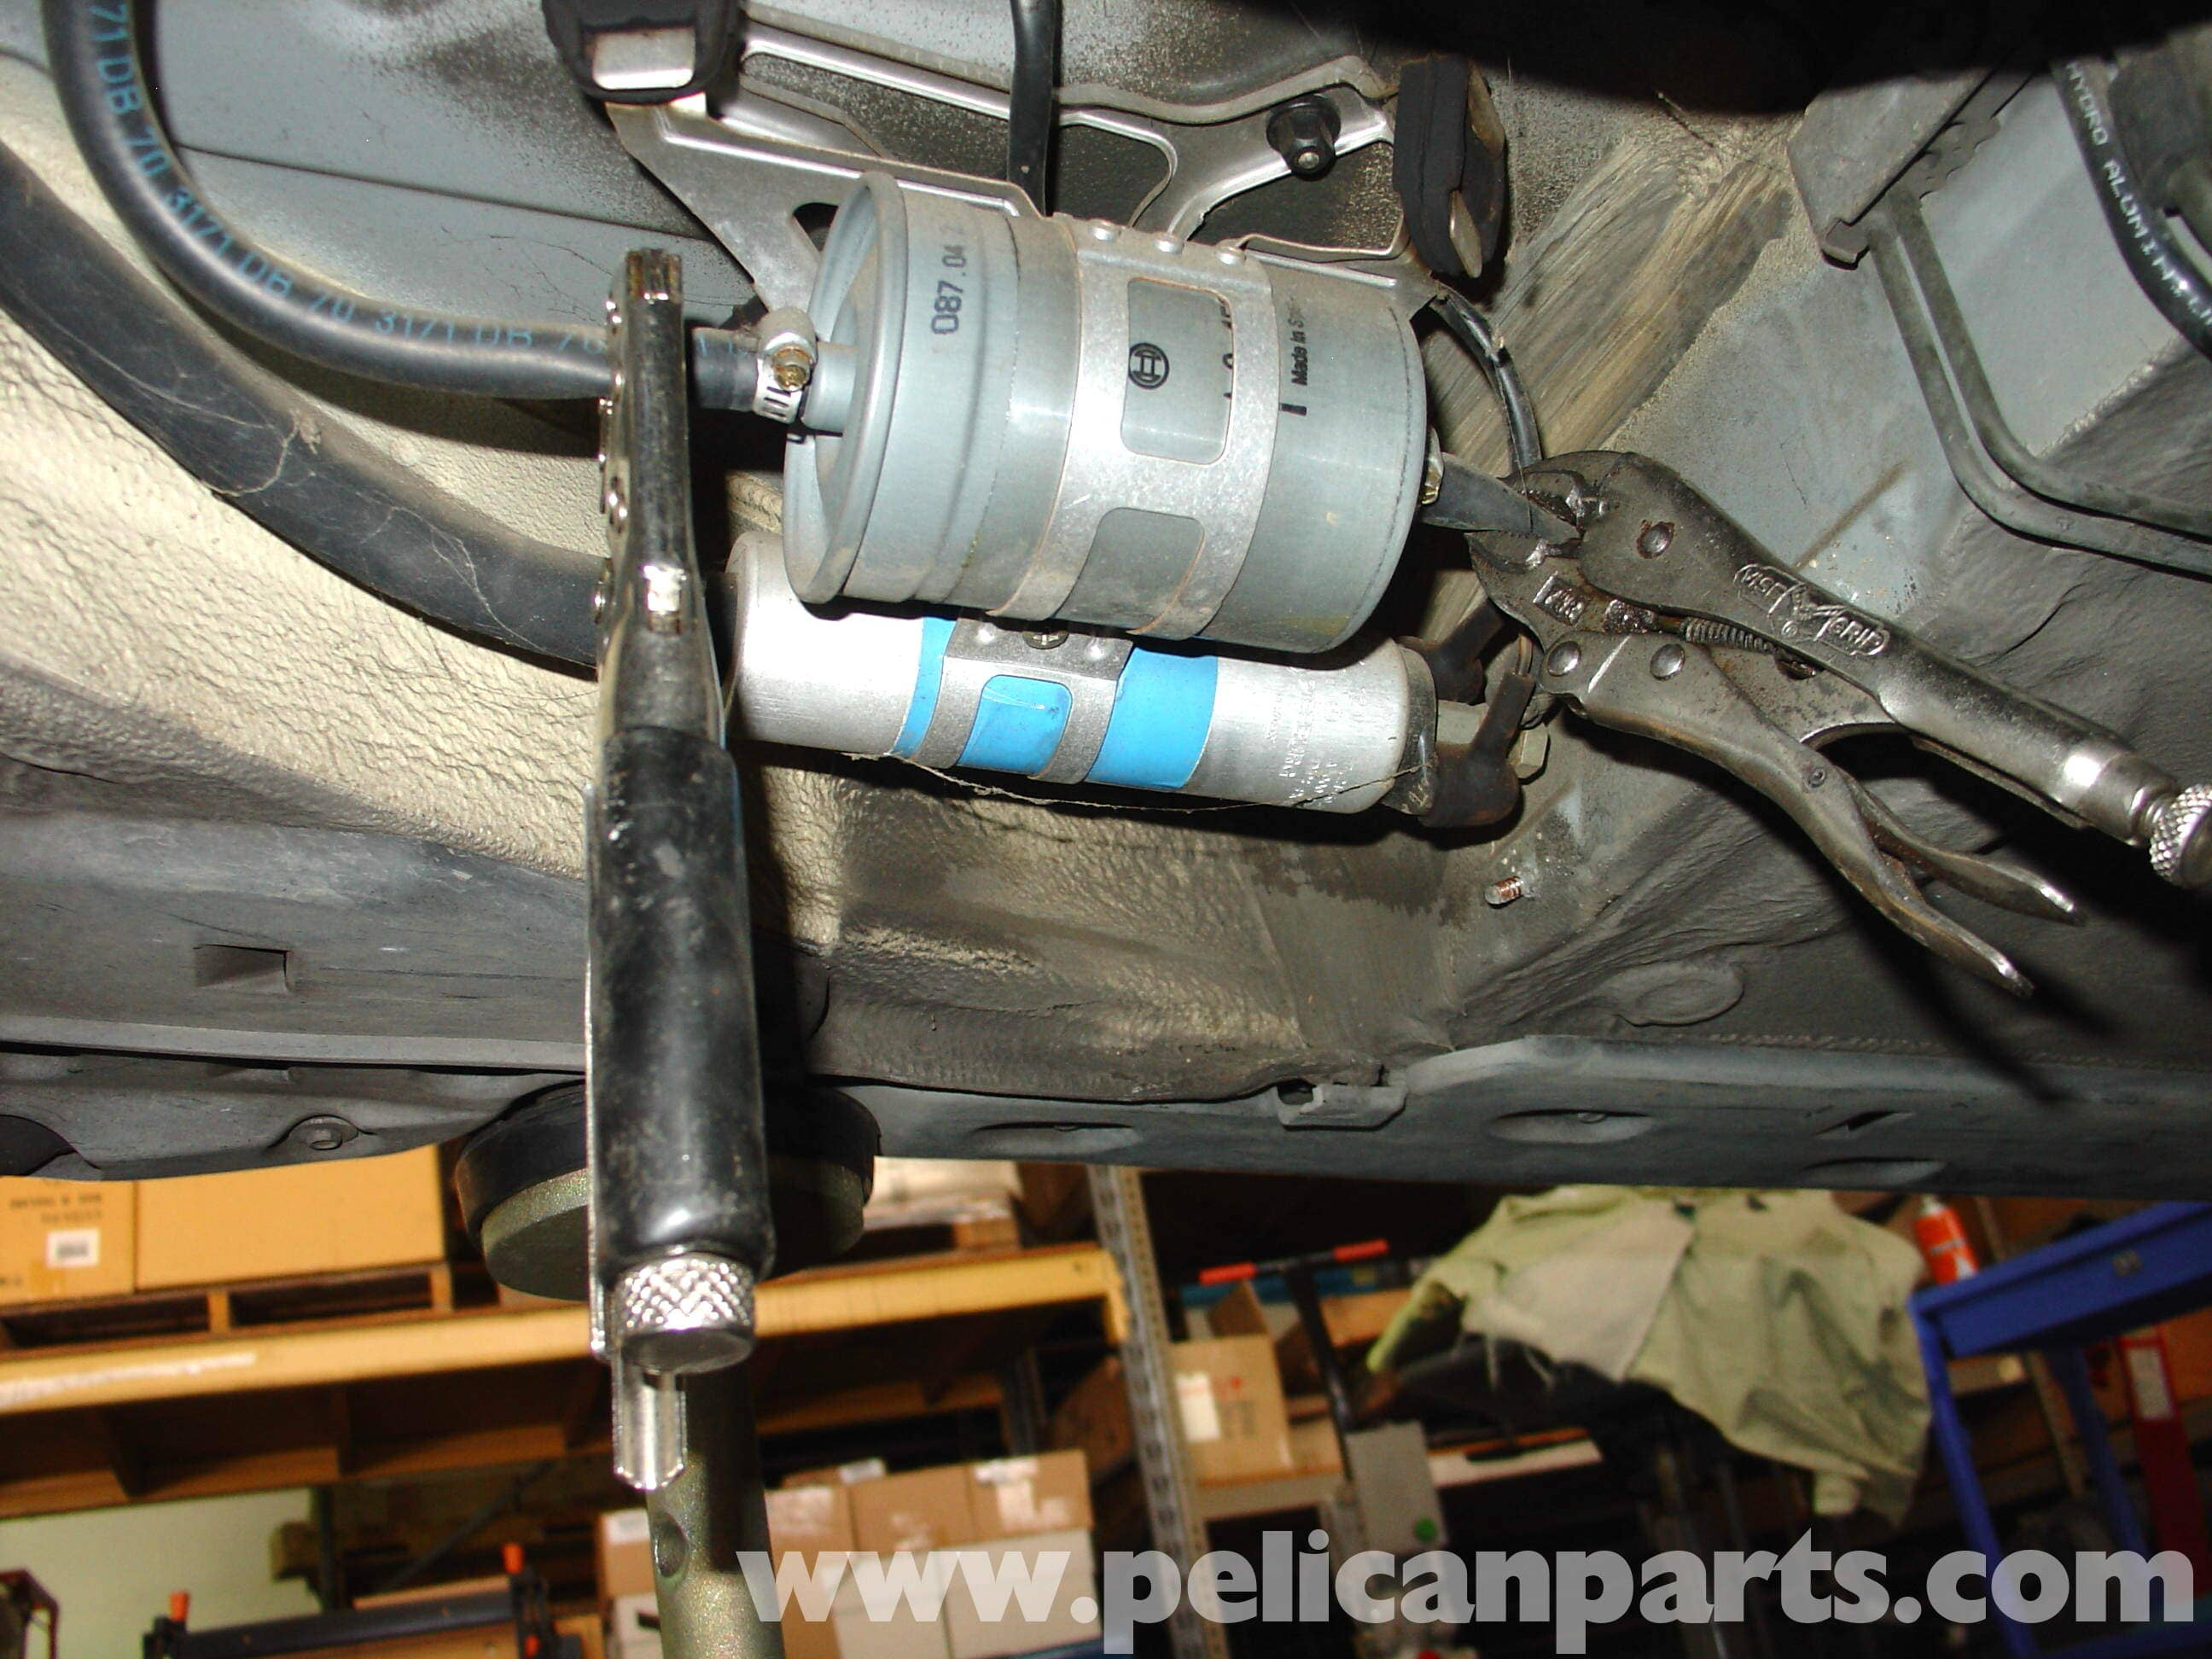 Mercedes Benz W210 Fuel Filter Replacement 1996 03 E320 E420 1988 Honda Accord Pump Location Large Image Extra